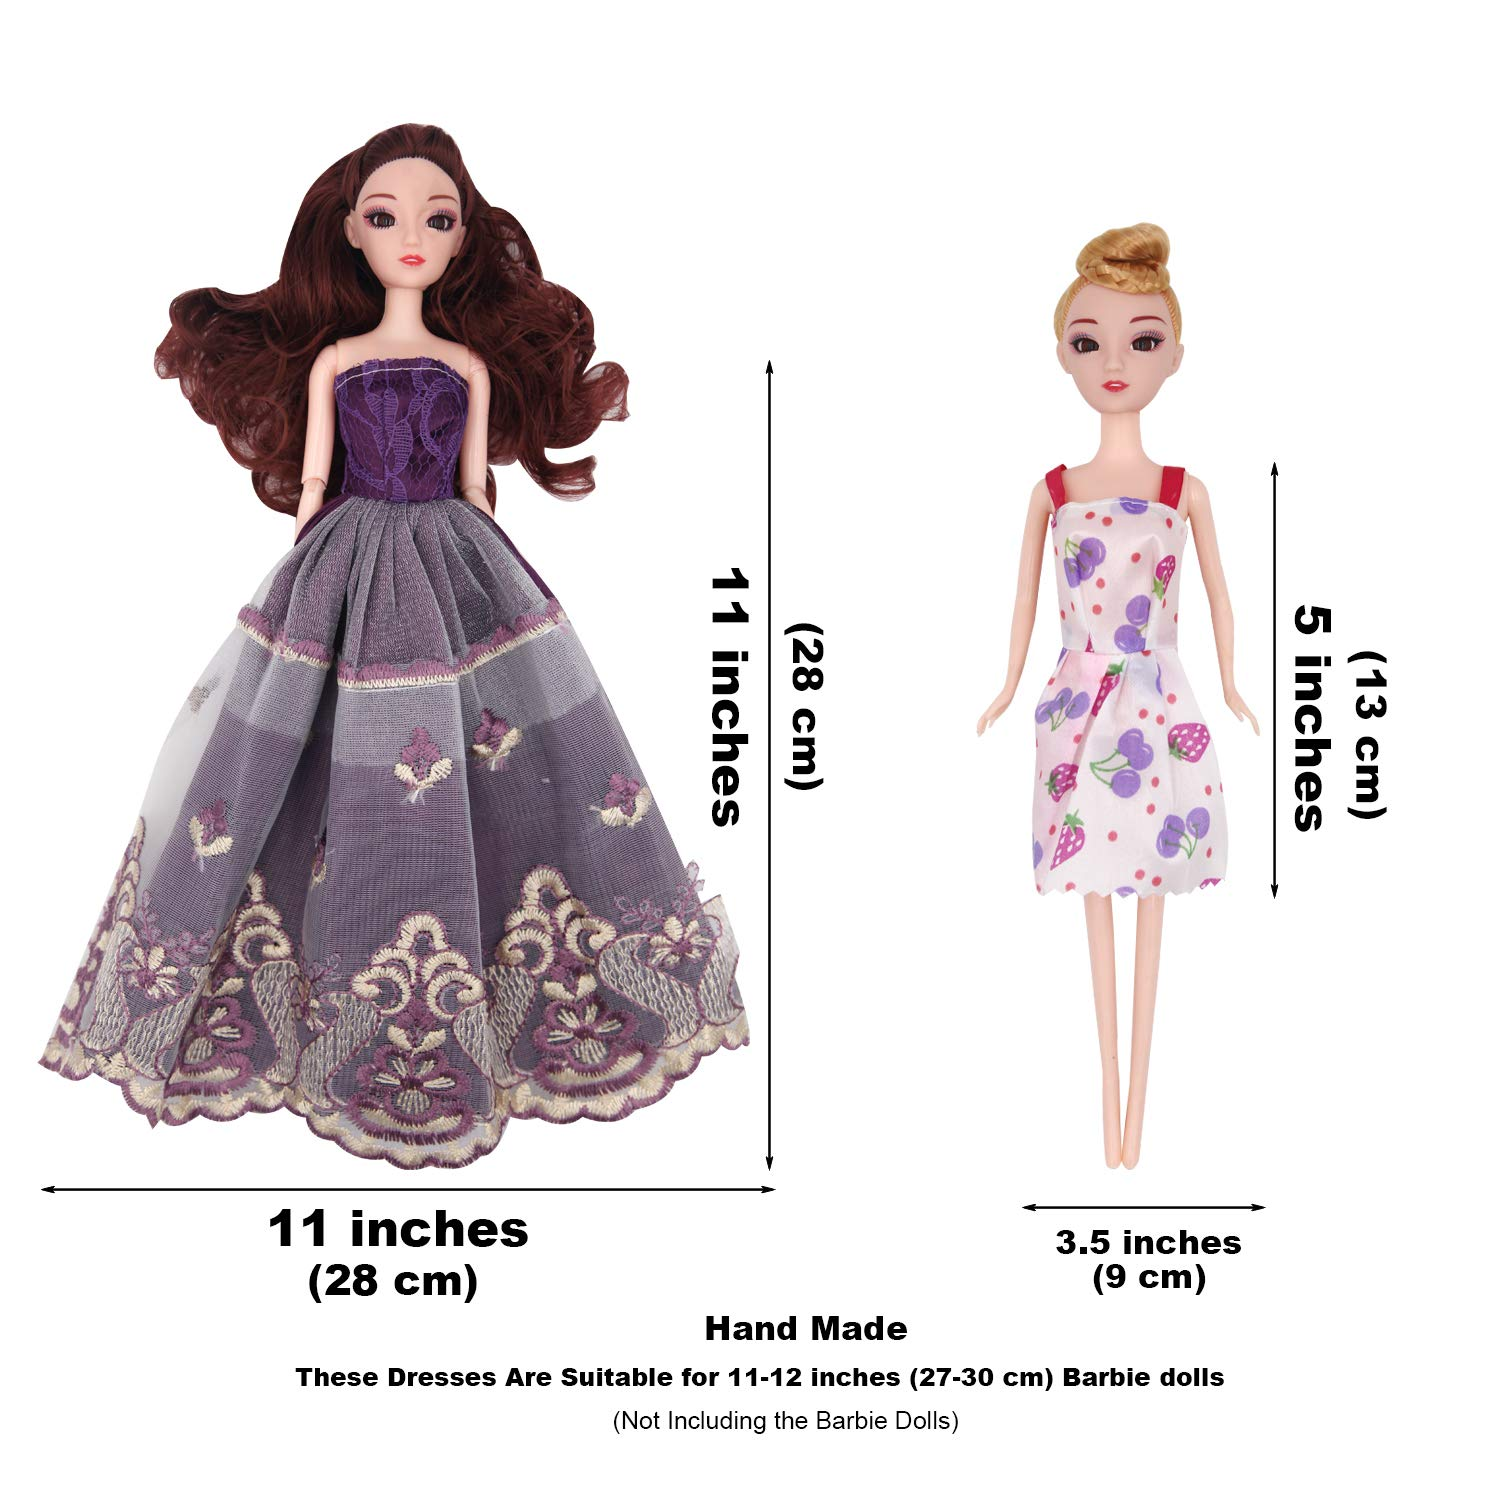 2 Handmade Doll Wedding Dresses and 108Pcs Doll Accessories for 11-12 Barbie Doll EuTengHao 123Pcs Doll Clothes and Accessories for Barbie Dolls Contain 13 Party Gown Outfits Dresses for Barbie